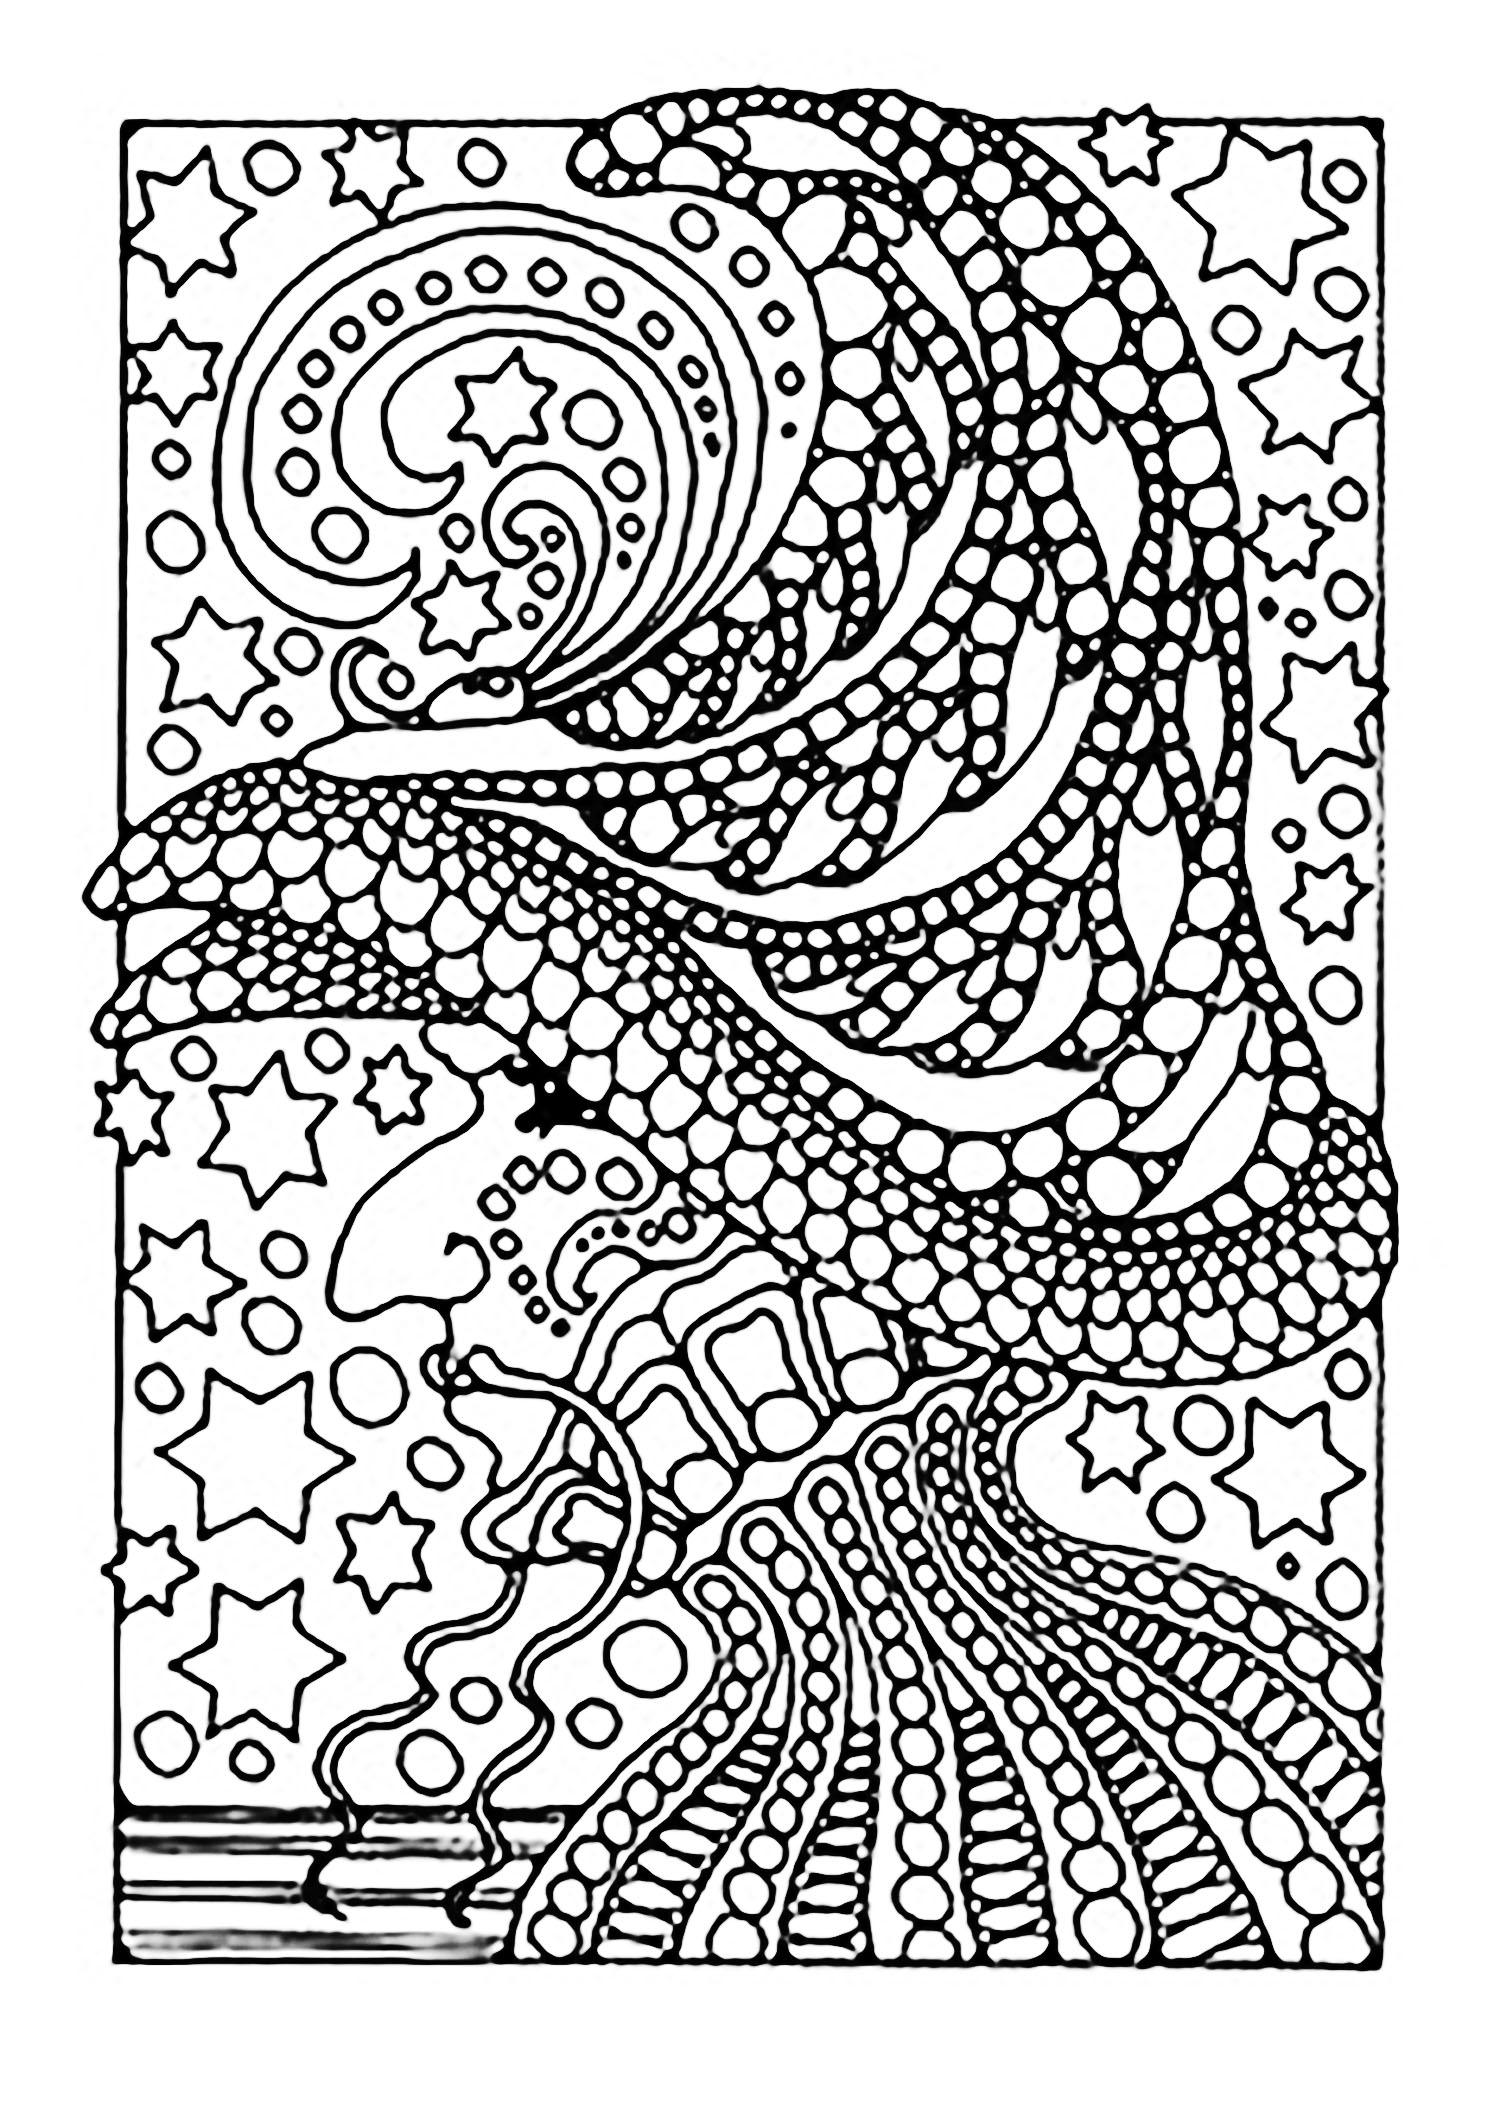 printable pictures to color for adults 10 difficult owl coloring page for adults to pictures for adults color printable